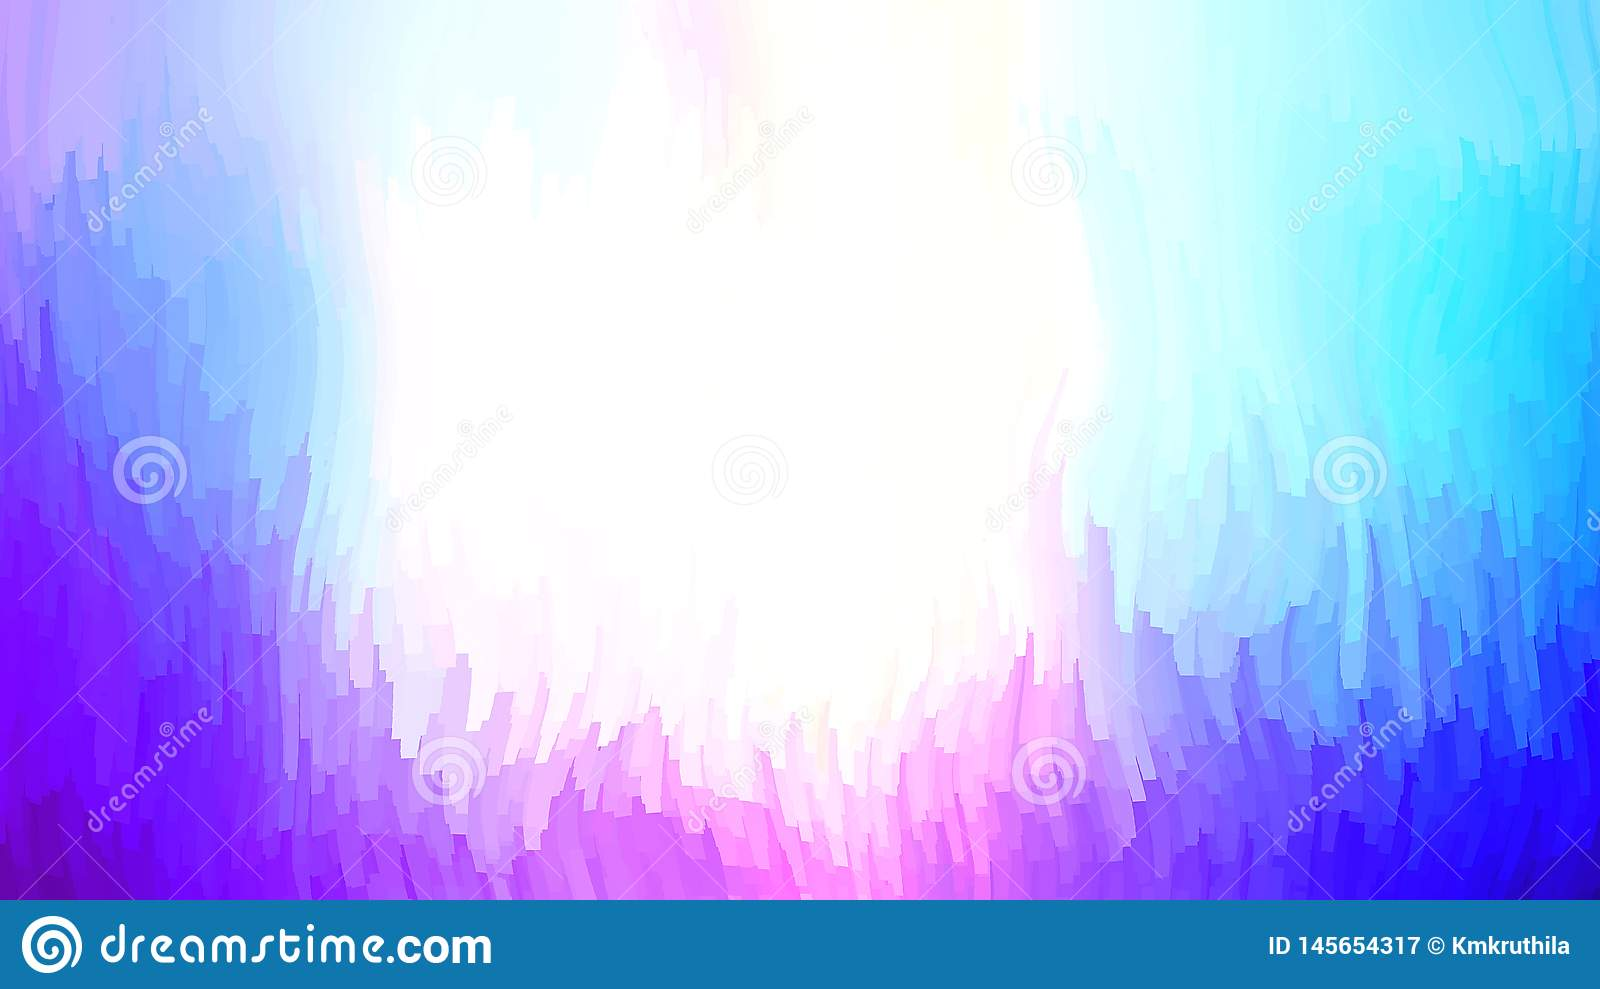 Abstract Blue Purple And White Beautiful Elegant